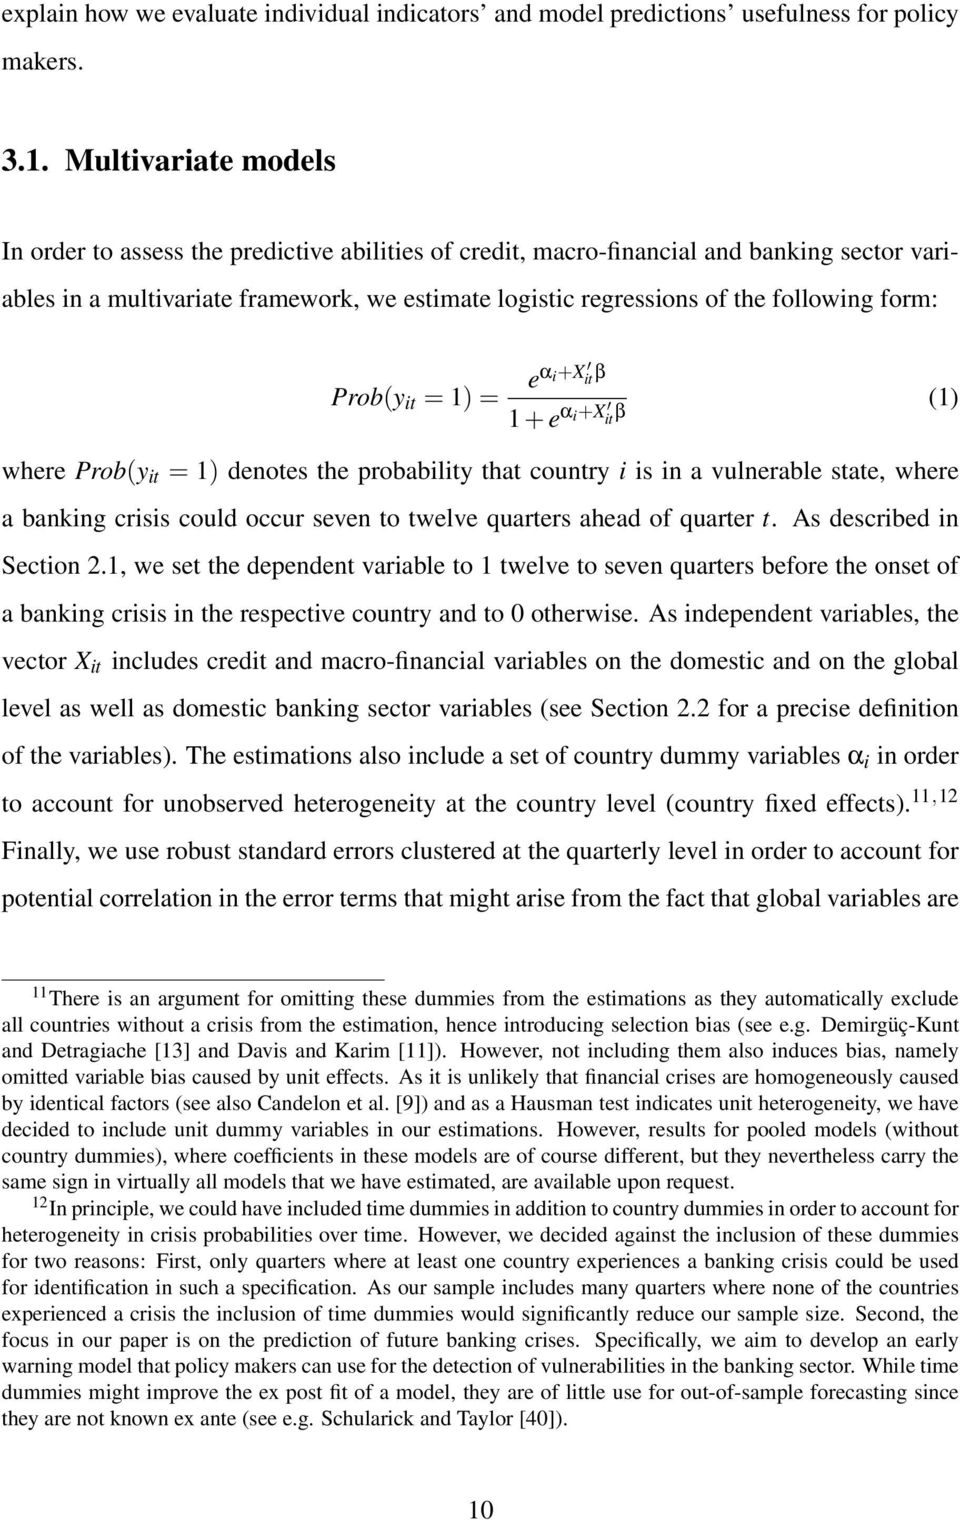 form: Prob(y it = 1) = eα i+x it β 1 + e α i+x it β (1) where Prob(y it = 1) denotes the probability that country i is in a vulnerable state, where a banking crisis could occur seven to twelve